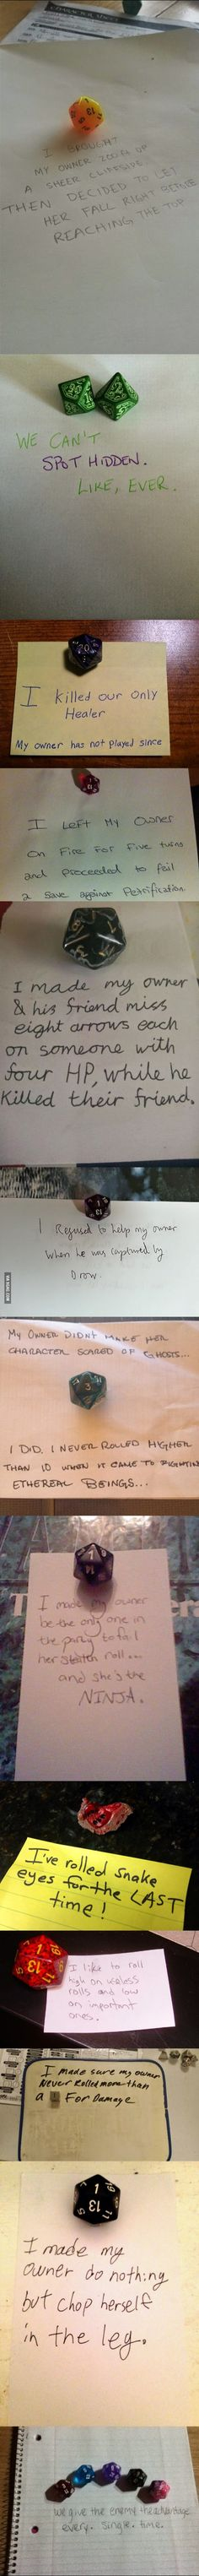 Dice Shameing - For Lonely Nerds Without Dogs